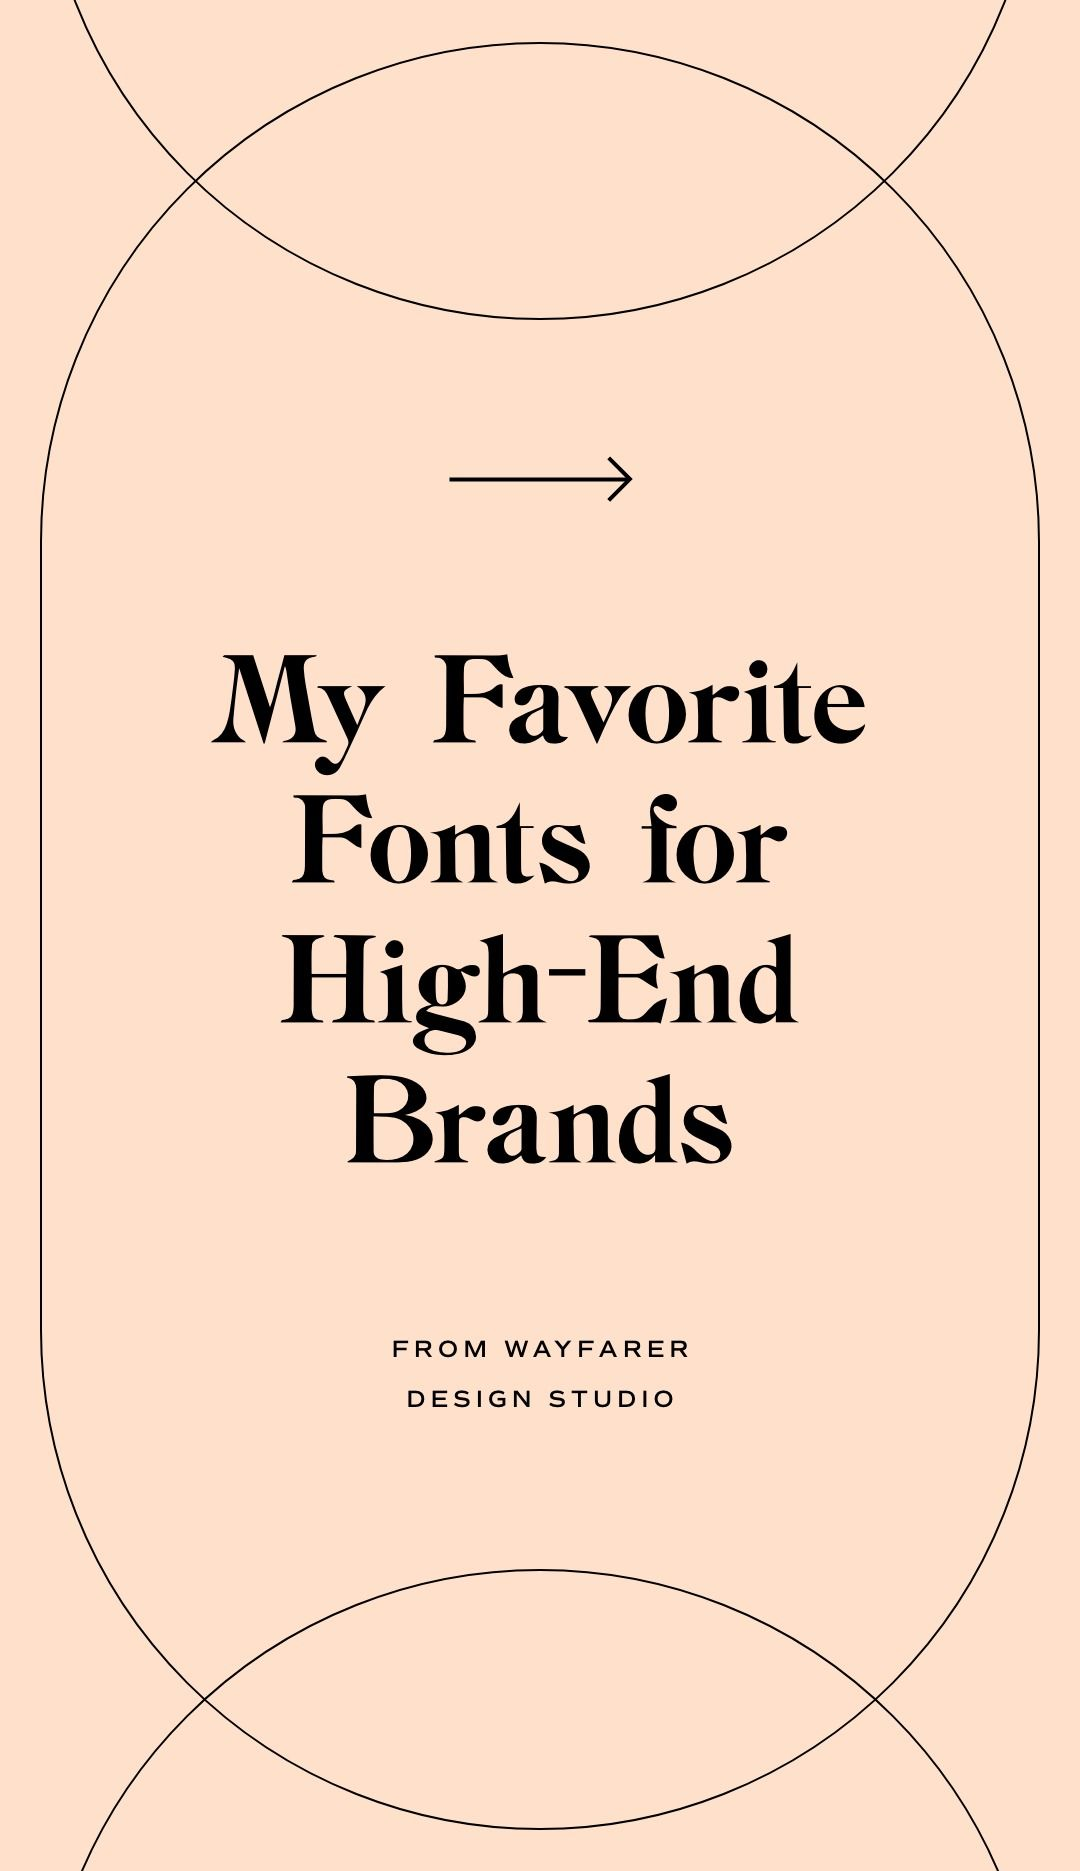 Modern, classy, luxury fonts for your website, brand or product packaging by Wayfarer Design Studio. Type inspiration,typography design, clean, simple, airy, branding, strategic graphic design, logo, inspo, canva, font pairings